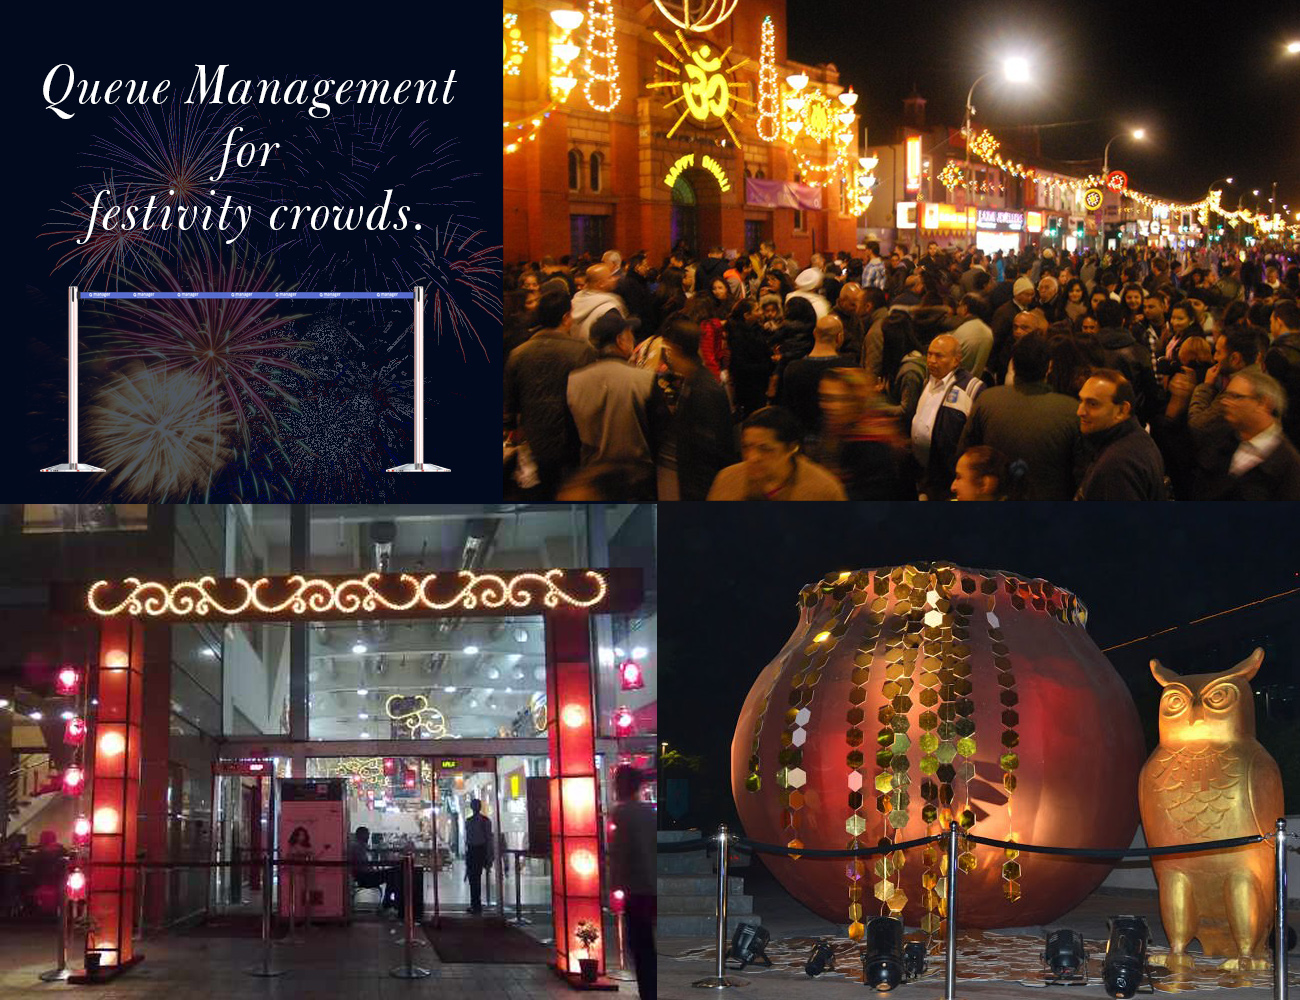 Need Queue management for Festivity Crowds?